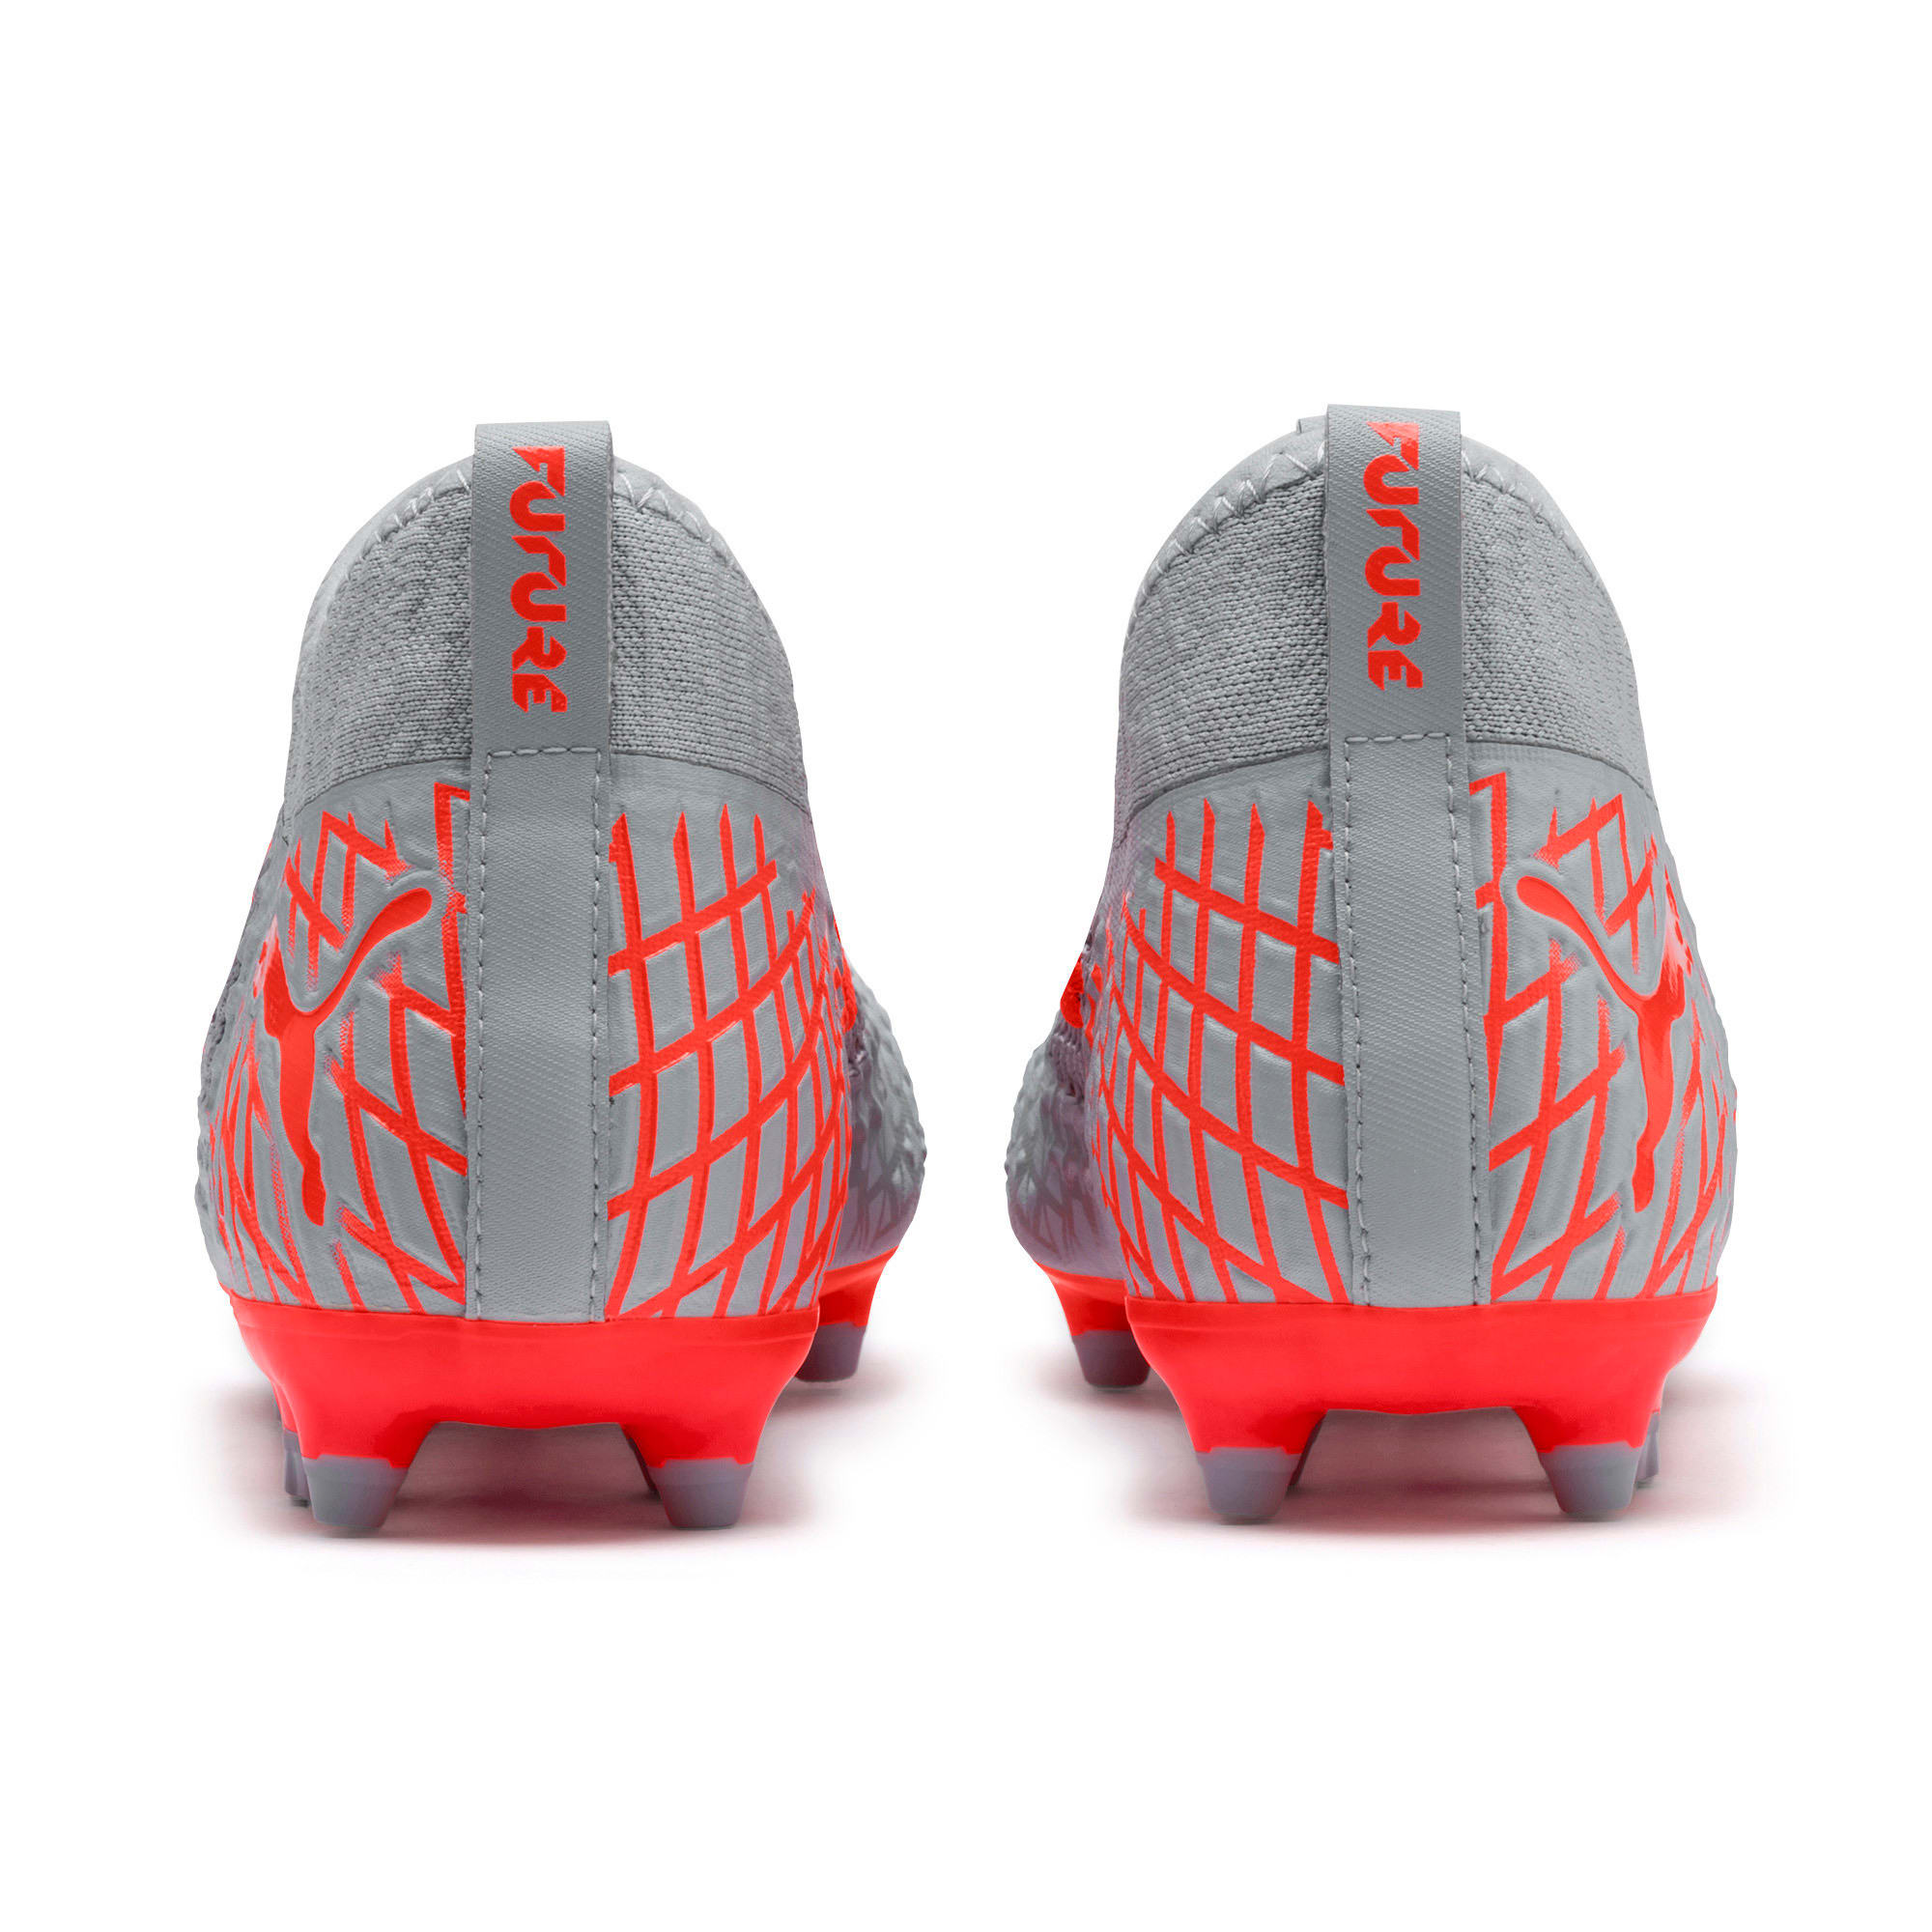 Thumbnail 4 of FUTURE 4.3 NETFIT FG/AG Men's Football Boots, Glacial Blue-Nrgy Red, medium